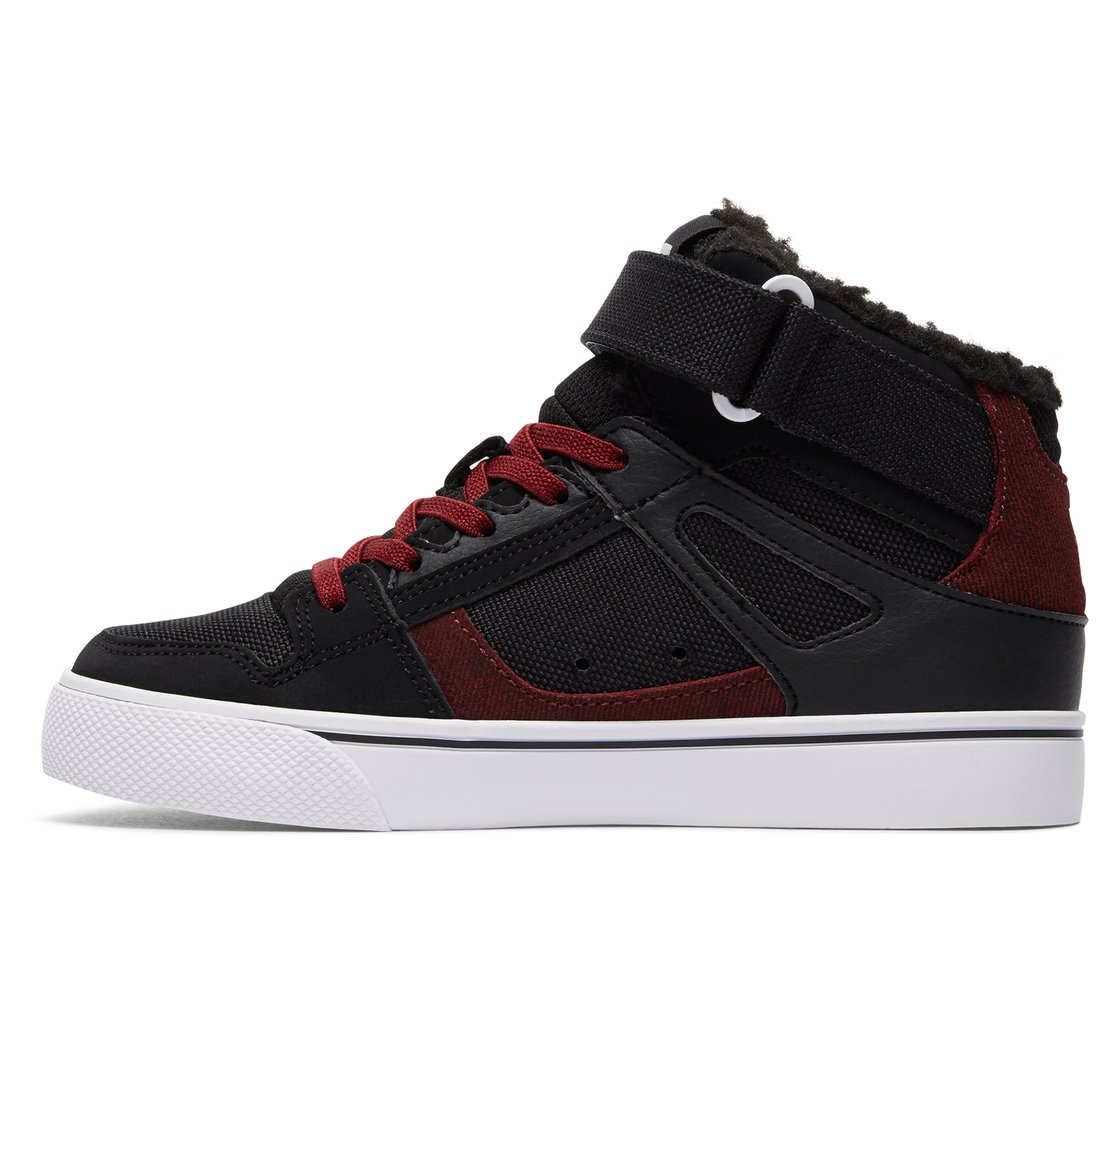 DC Shoes Spartan High WNT EV, Jungen Sneaker, Schwarz (Black/Dark Red), 30 EU (11.5 UK)